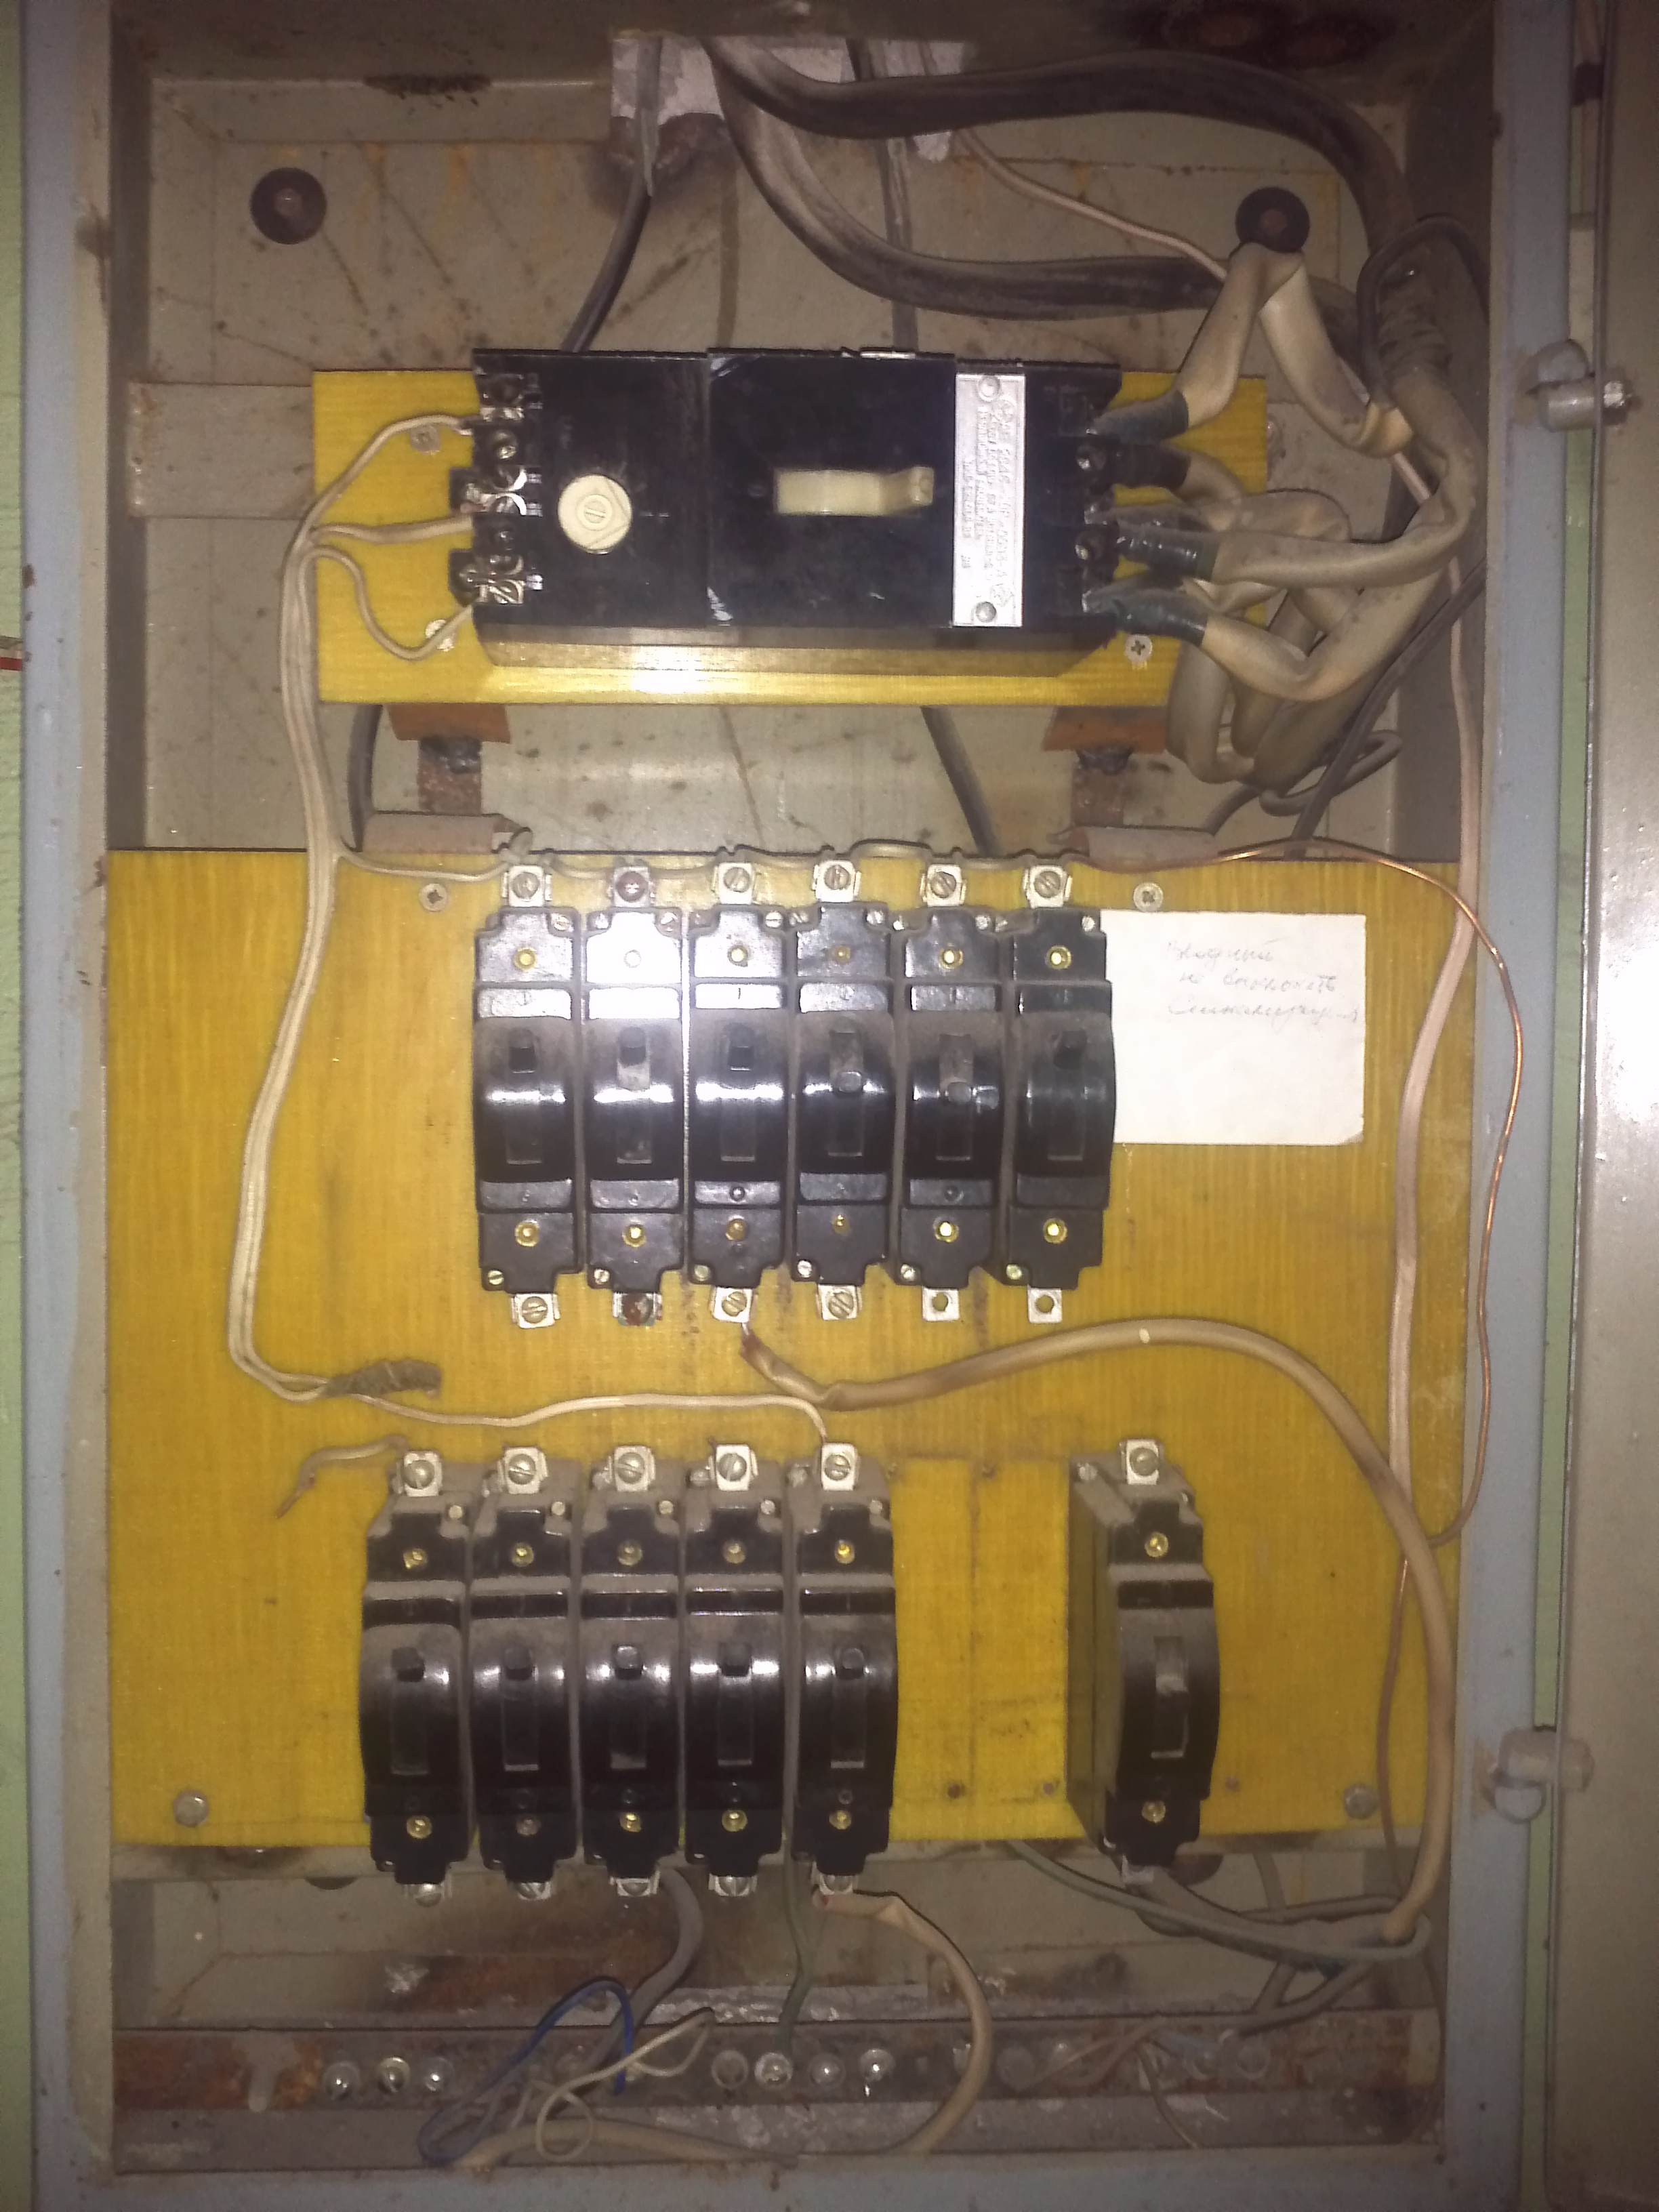 File:Fuse box grounded to hot wire.JPG